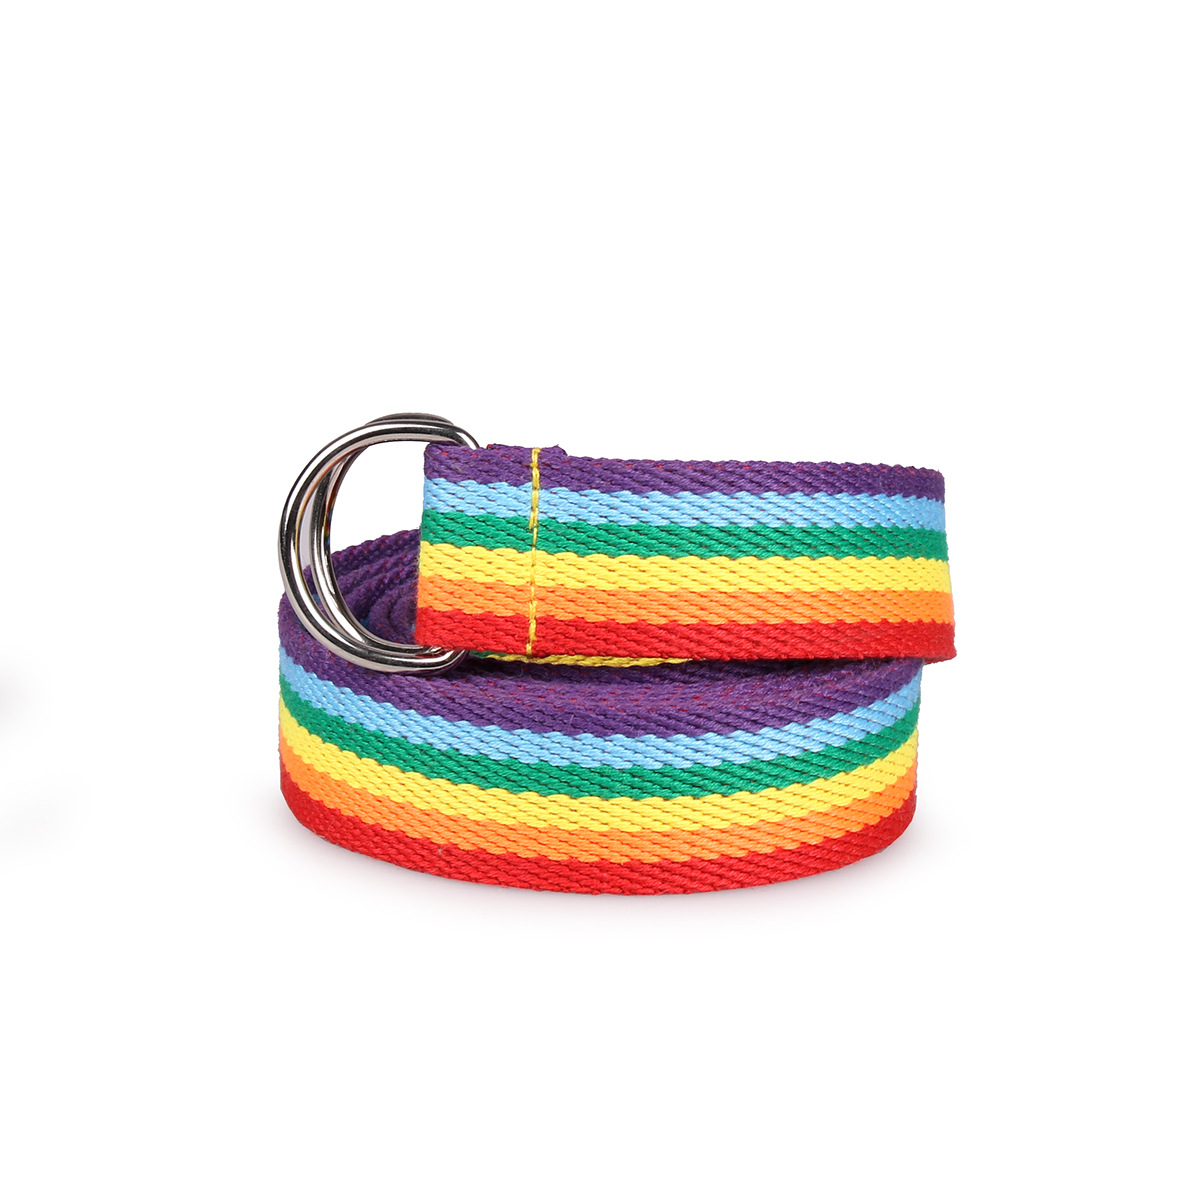 Unisex Double Ring D-type Buckle Rainbow Strip Webbing Casual Wild Decorative Canvas Belt Women Simple Fashion Design BL502